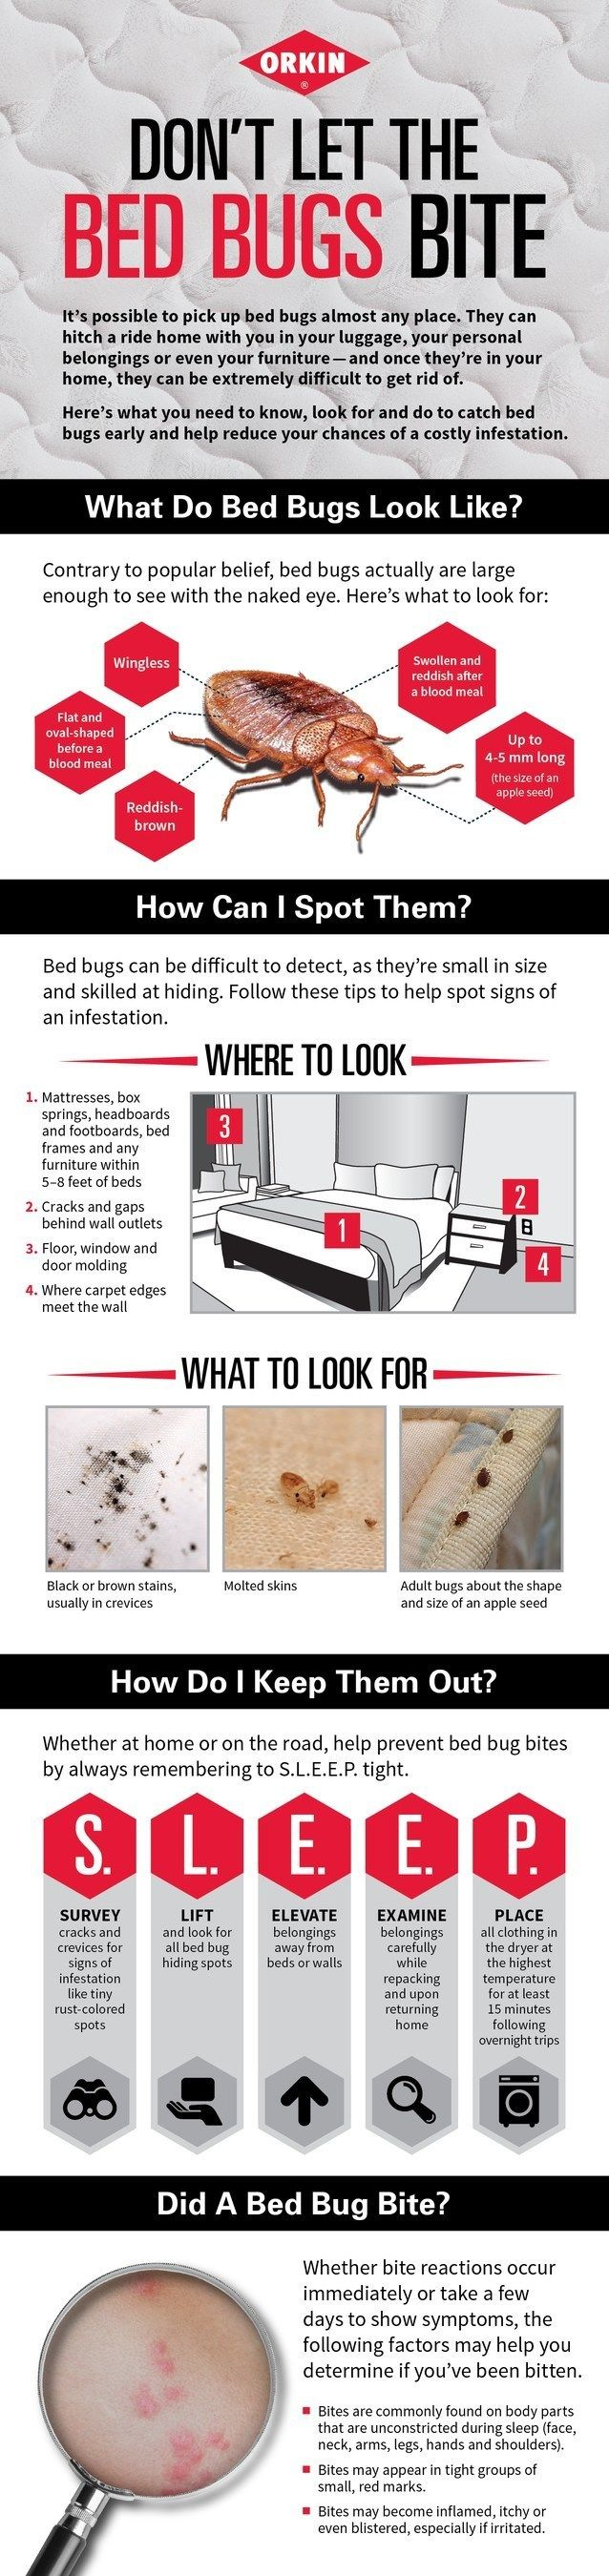 Don't let the bed bugs bite! Bed bugs are great hitchhikers and can make their way onto you or your belongings. Once in your home, bed bugs can be difficult to get rid of. Here are some tips to help you identify and prevent bed bugs from coming into your home.